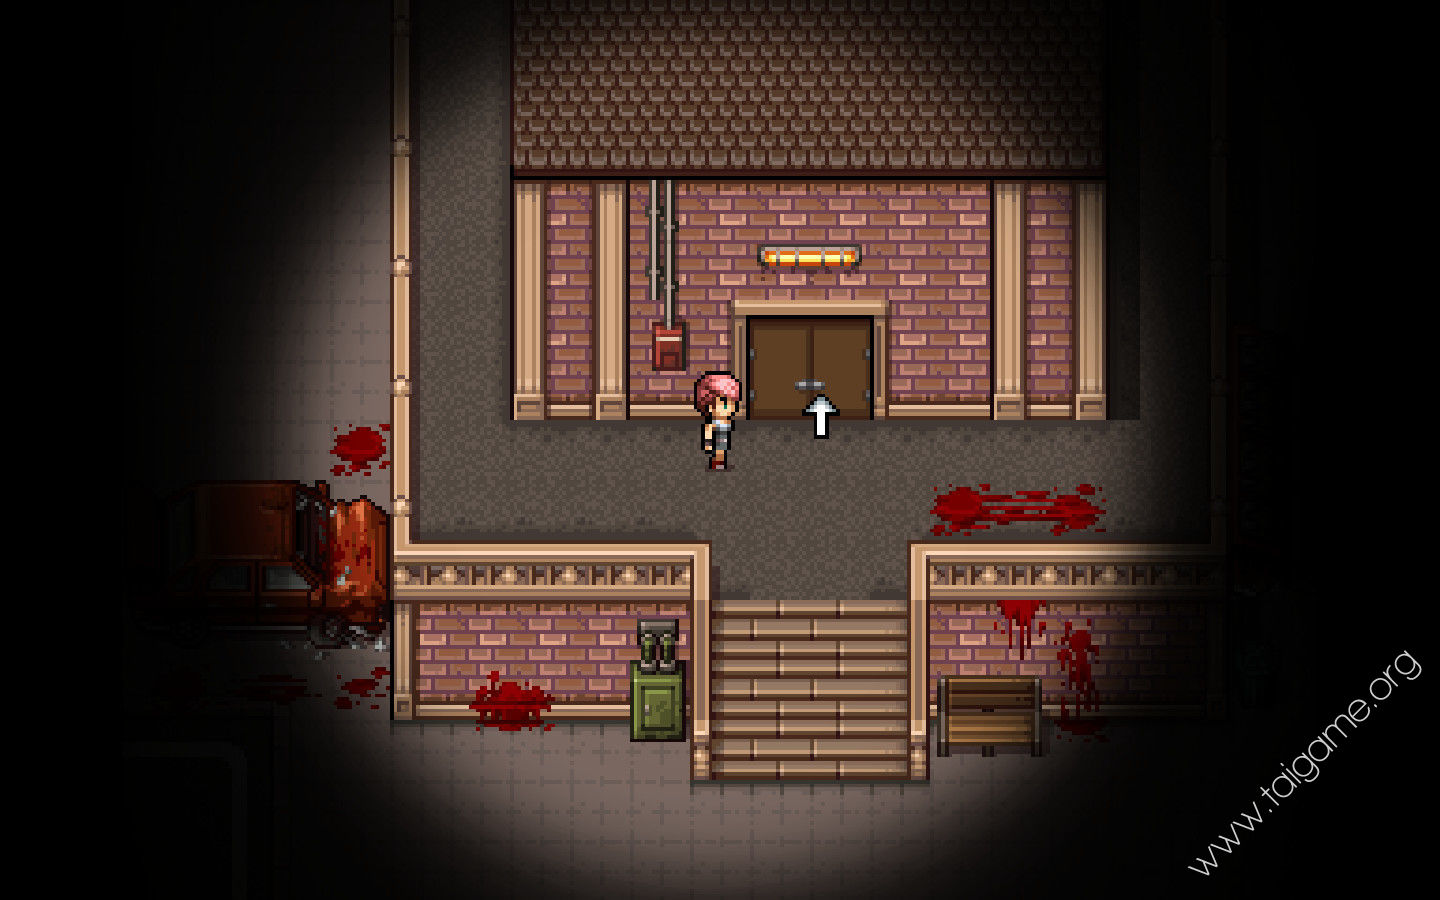 Eaten Alive Free Download - Best Game PC Full Version